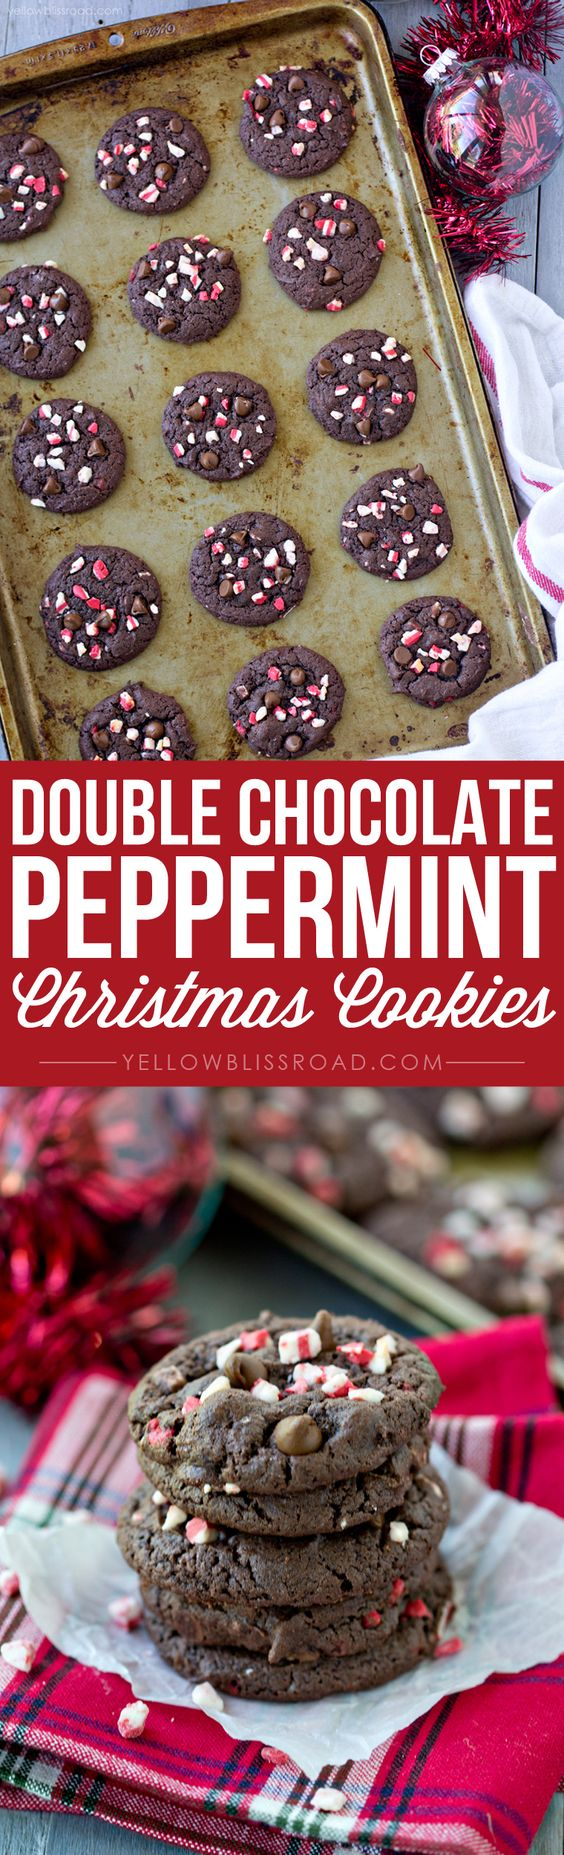 Easy chocolate peppermint cookies recipe